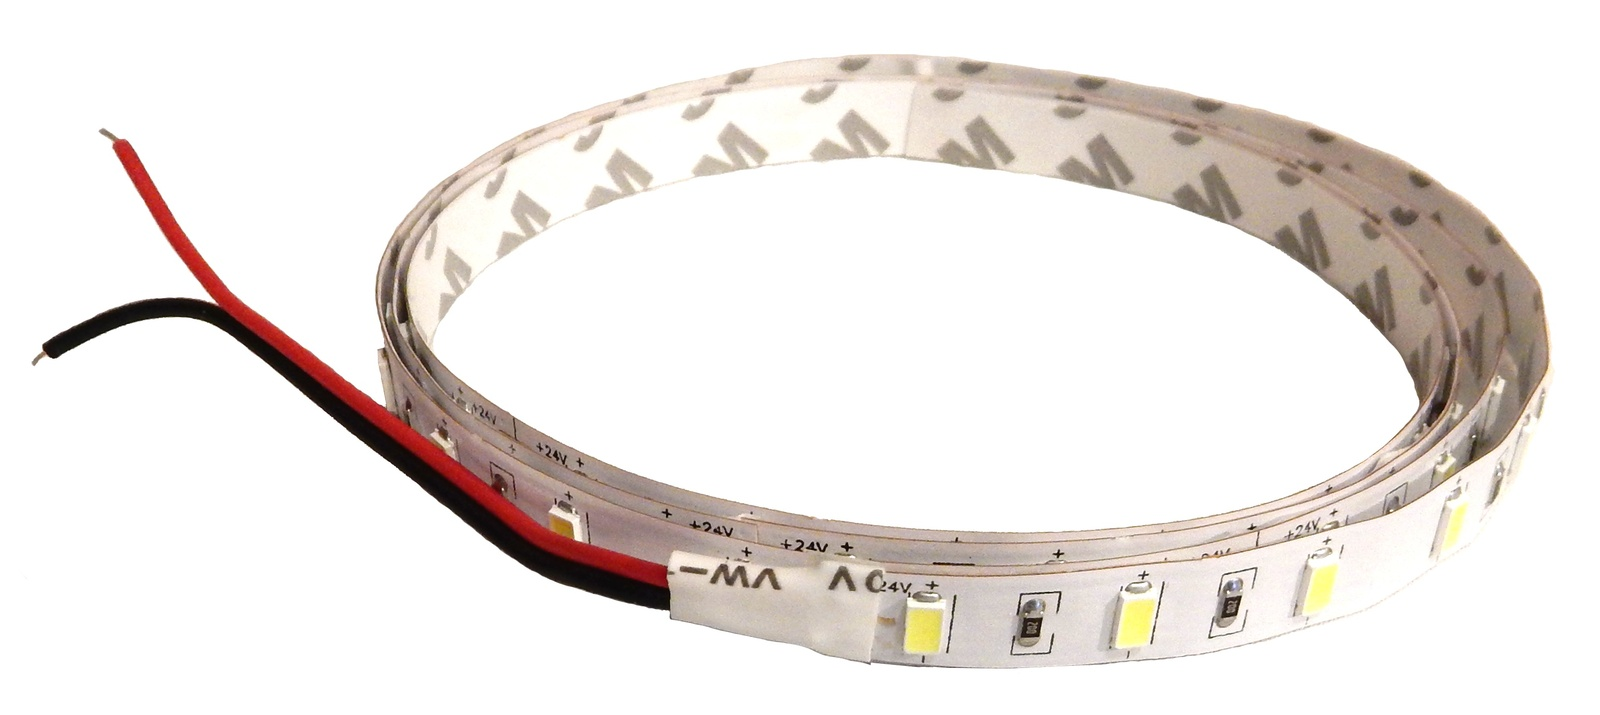 12', Hi-Lumen, Bright White, 5630 SMD, 24VDC, Hi-Efficiency LED Flexible strip